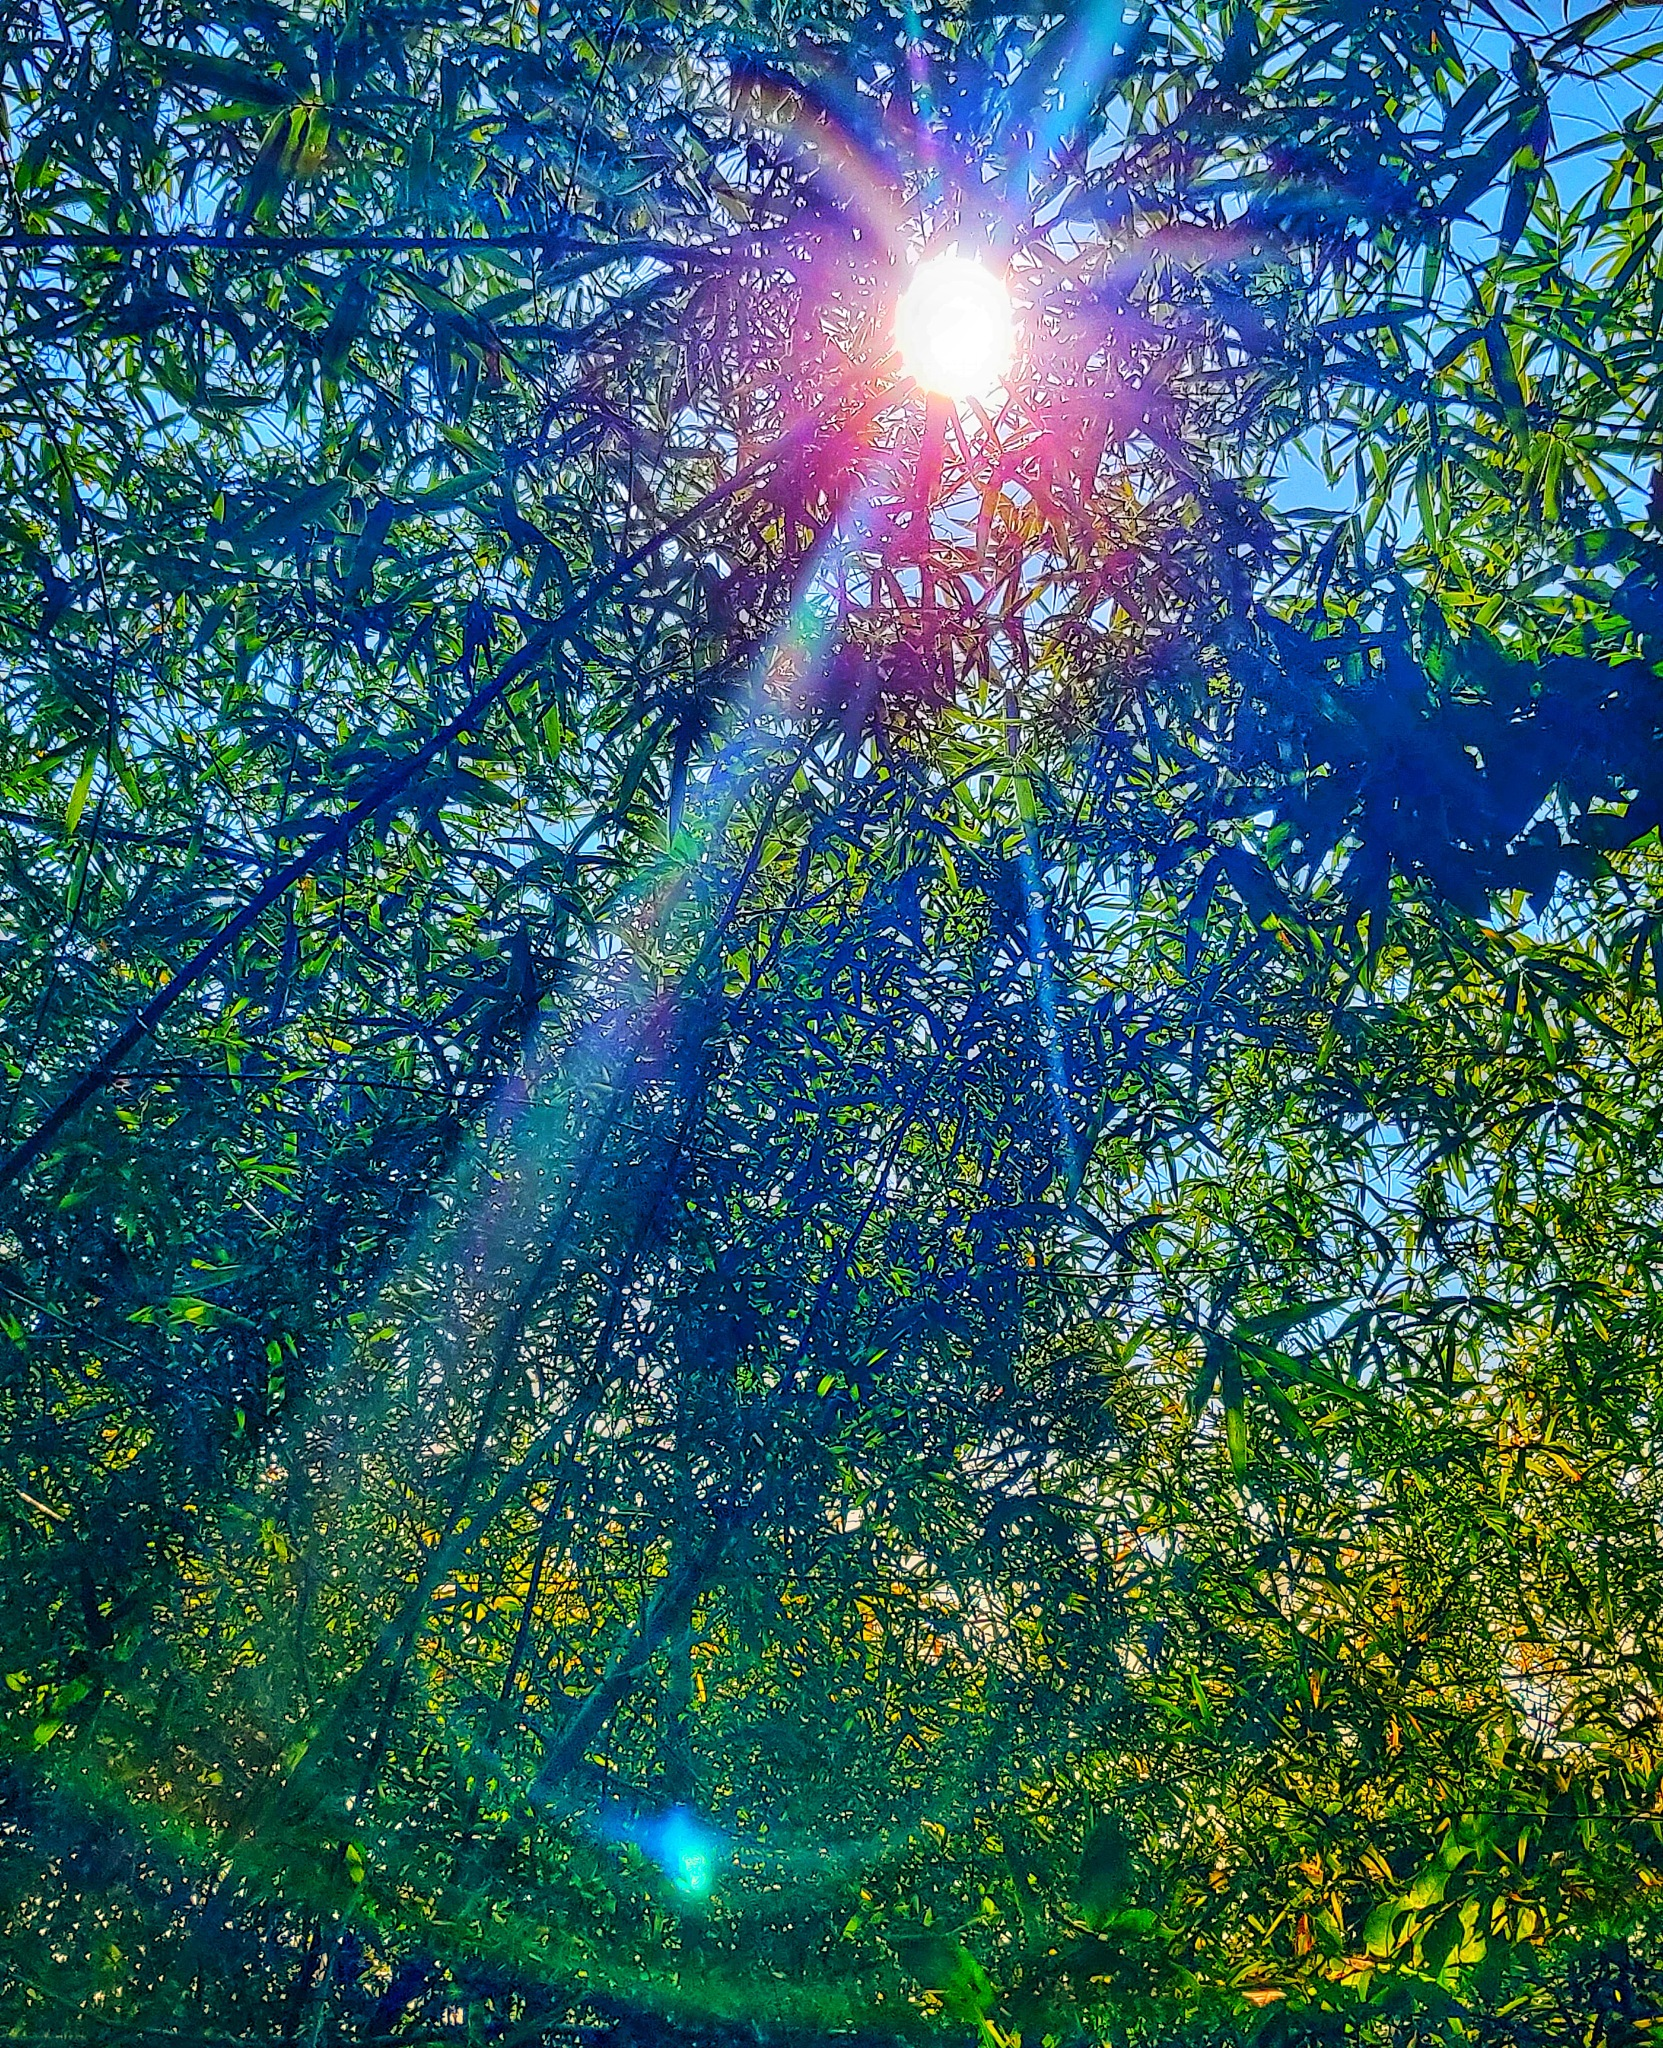 Sunstar Through Trees by by_the_way_23